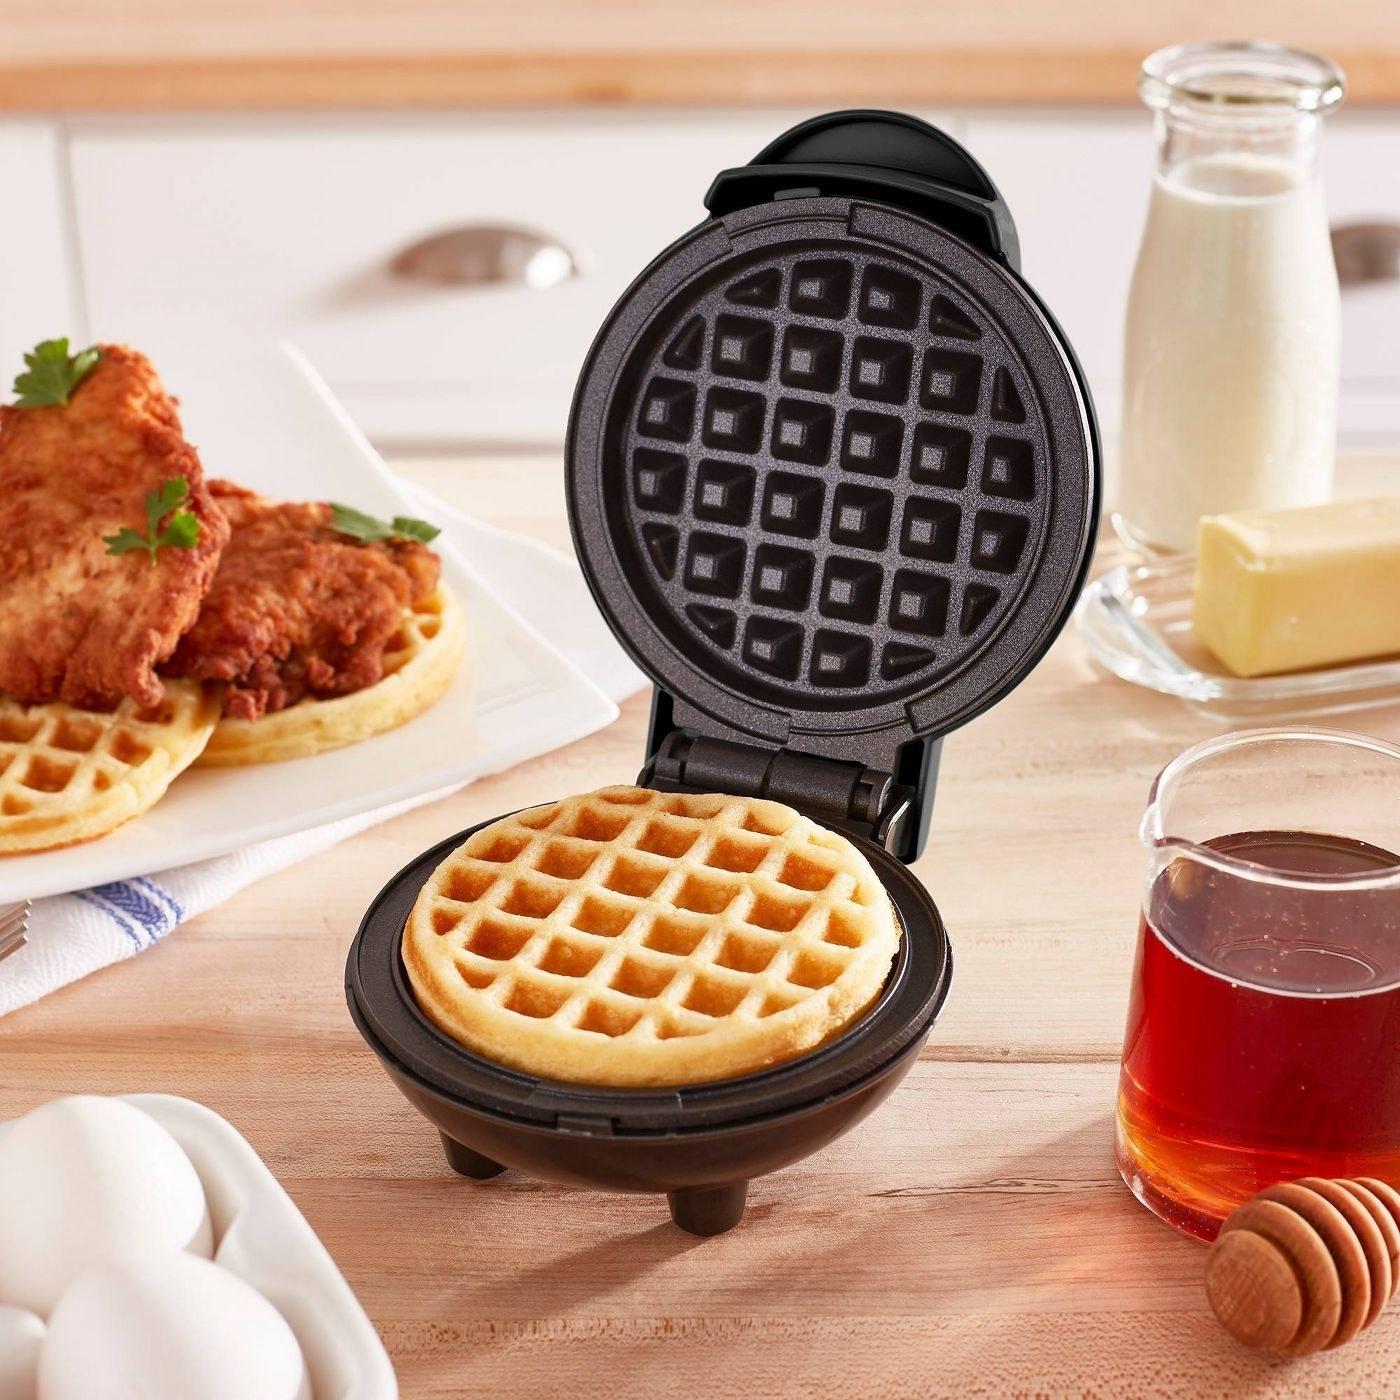 A mini waffle maker in a kitchen